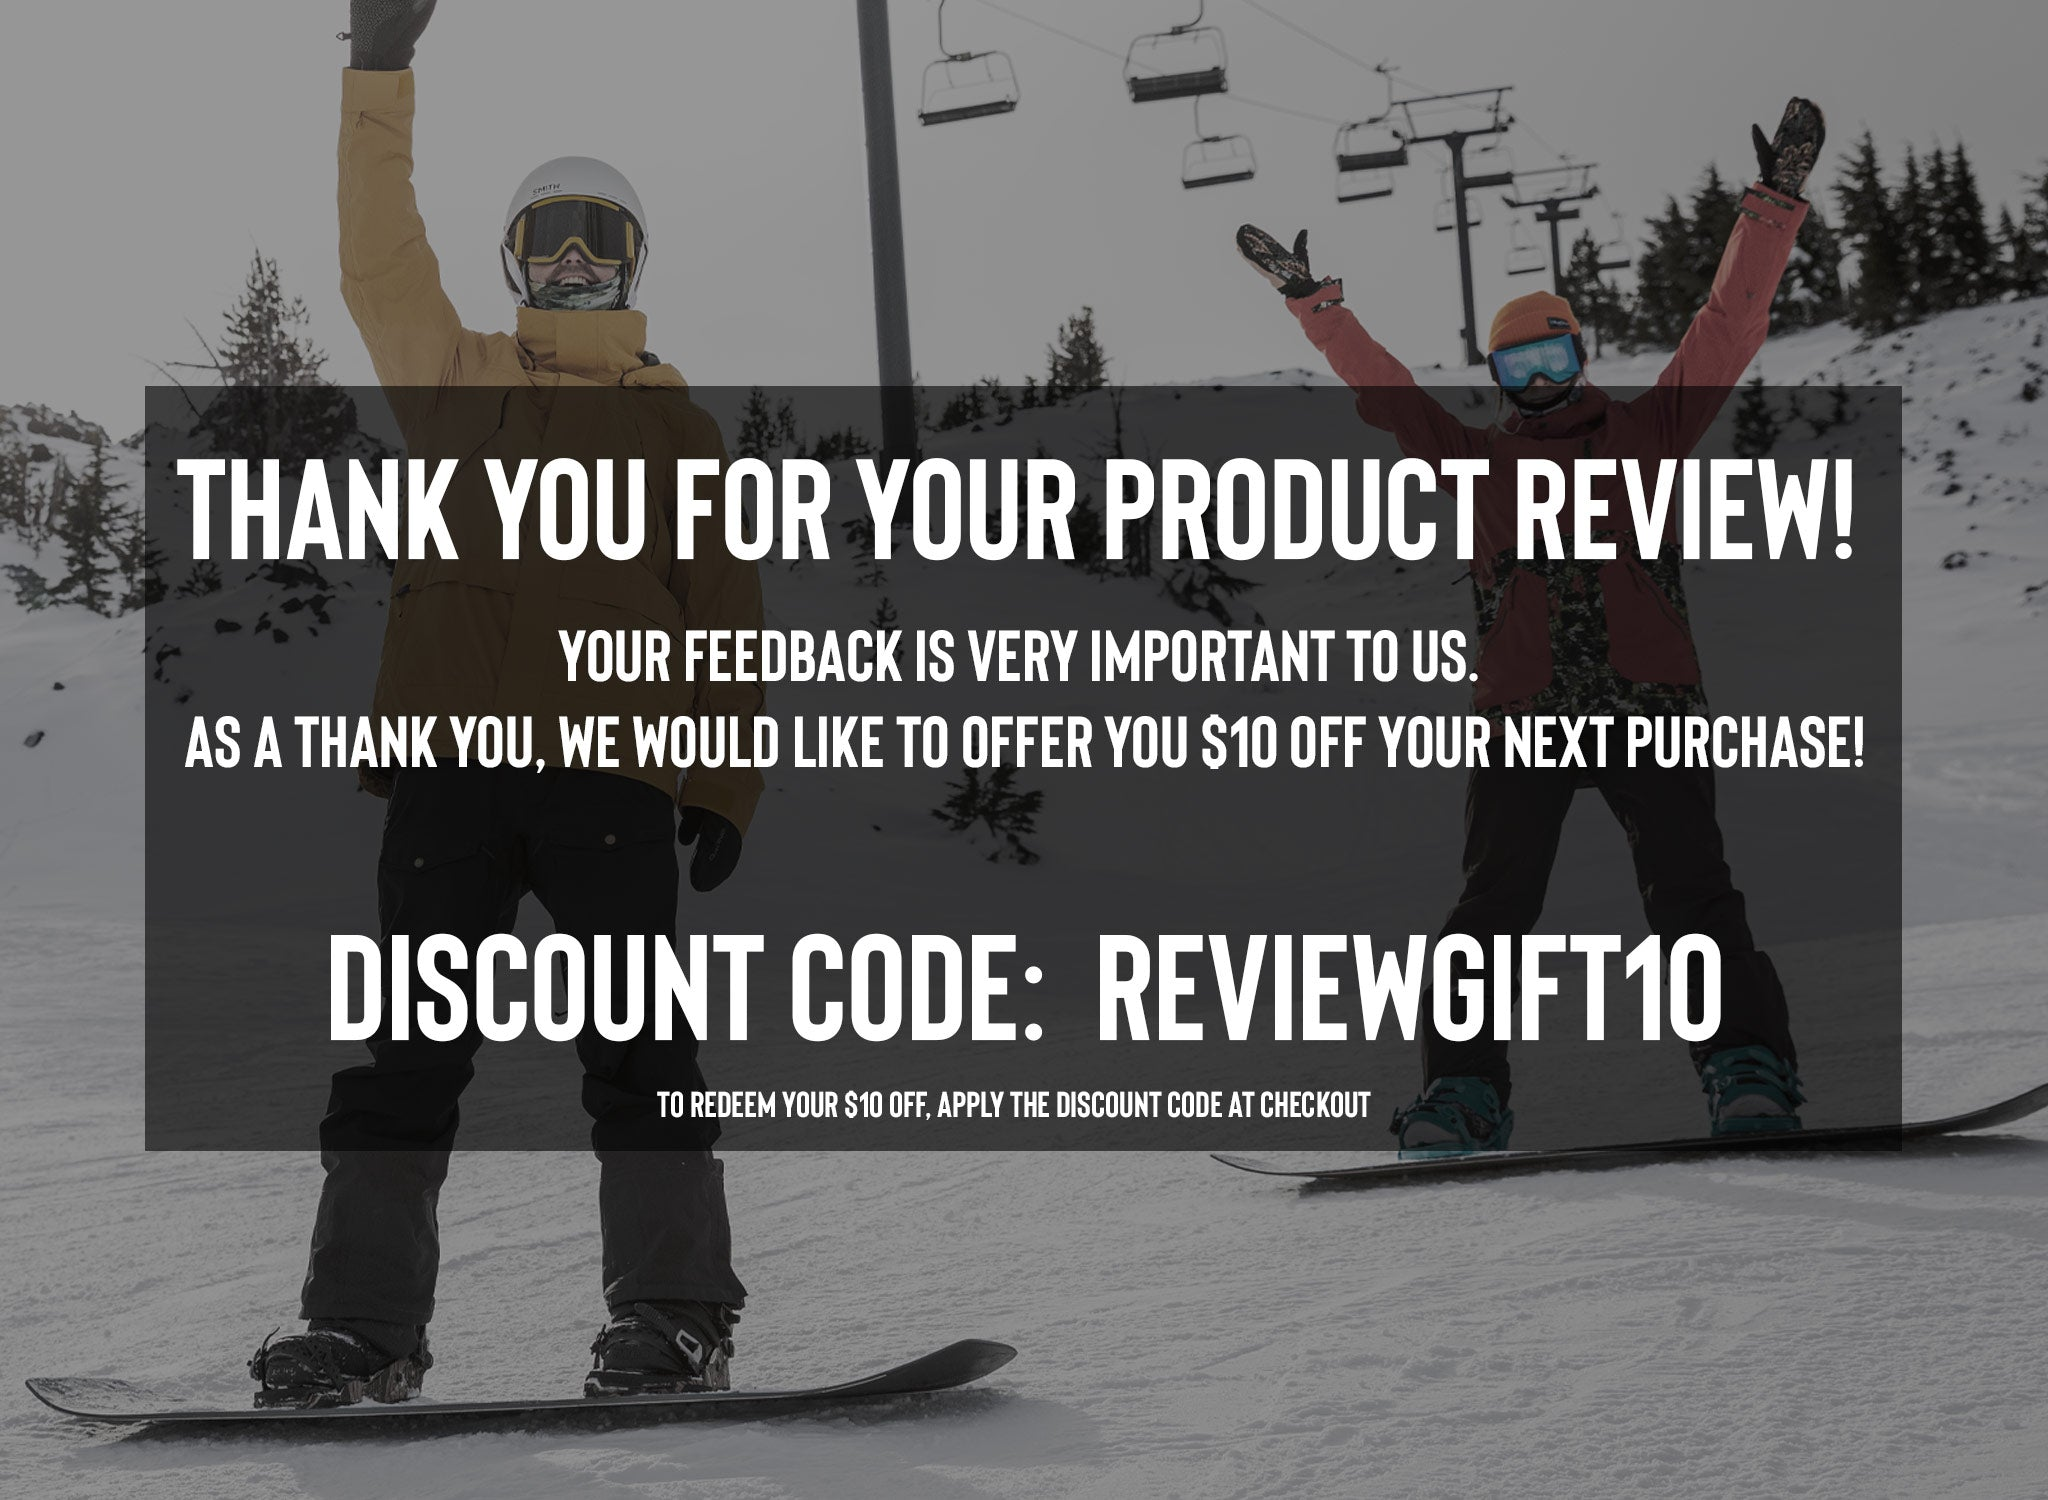 Thank you for your review. Receive $10 off with REVIEWGIFT10